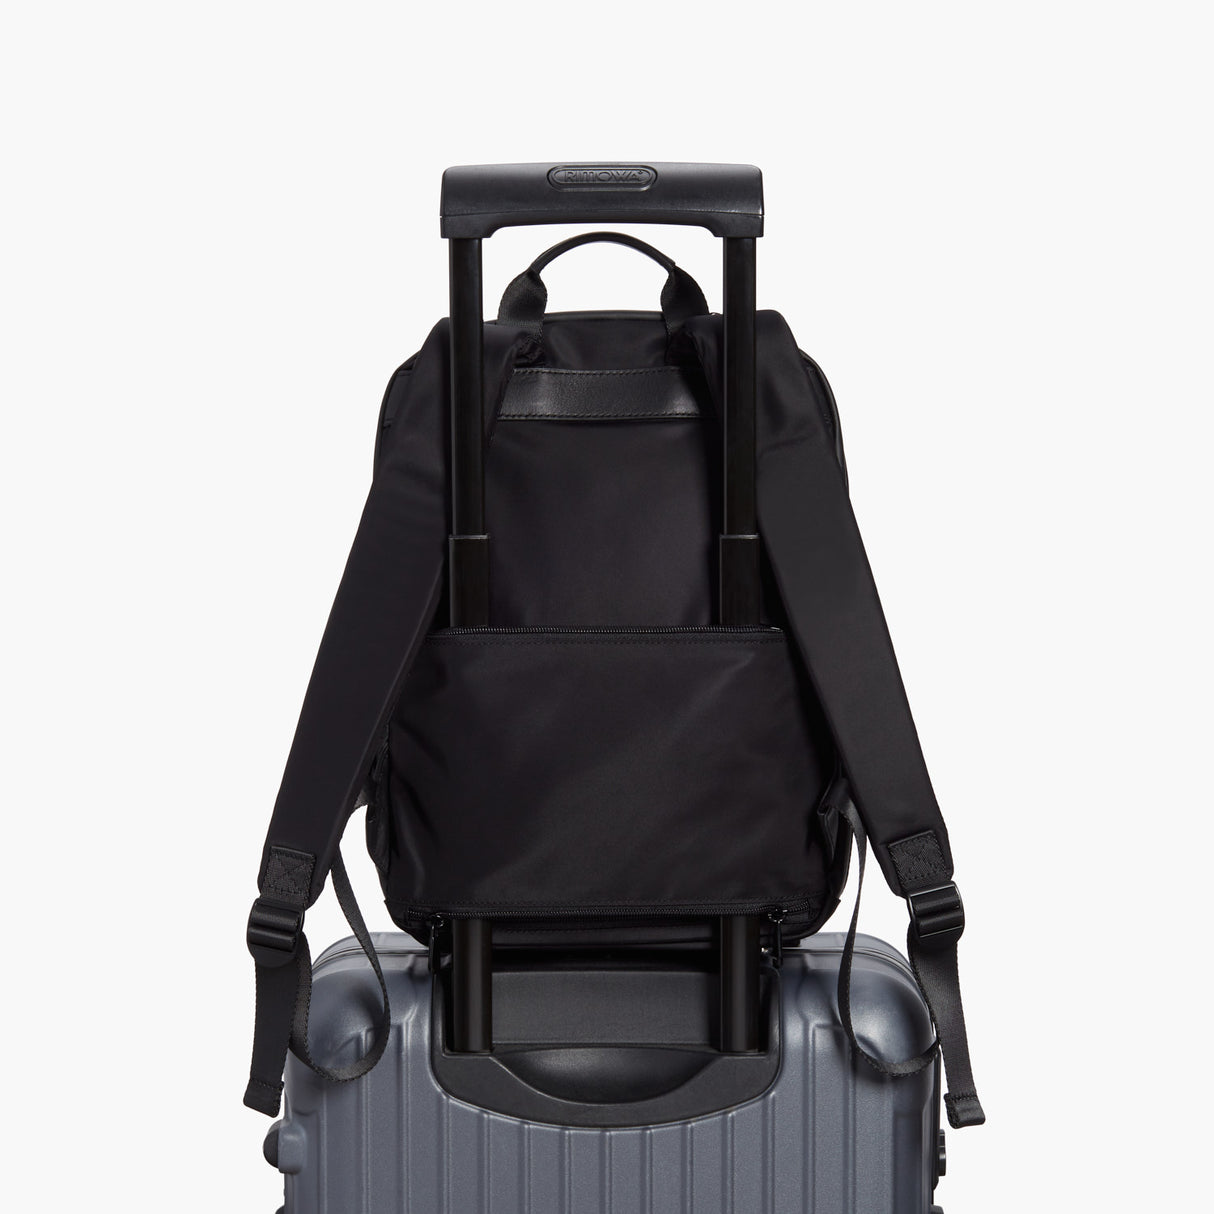 Luggage - Beacon - Nylon - Black / Silver / Azure - Backpack - Lo & Sons